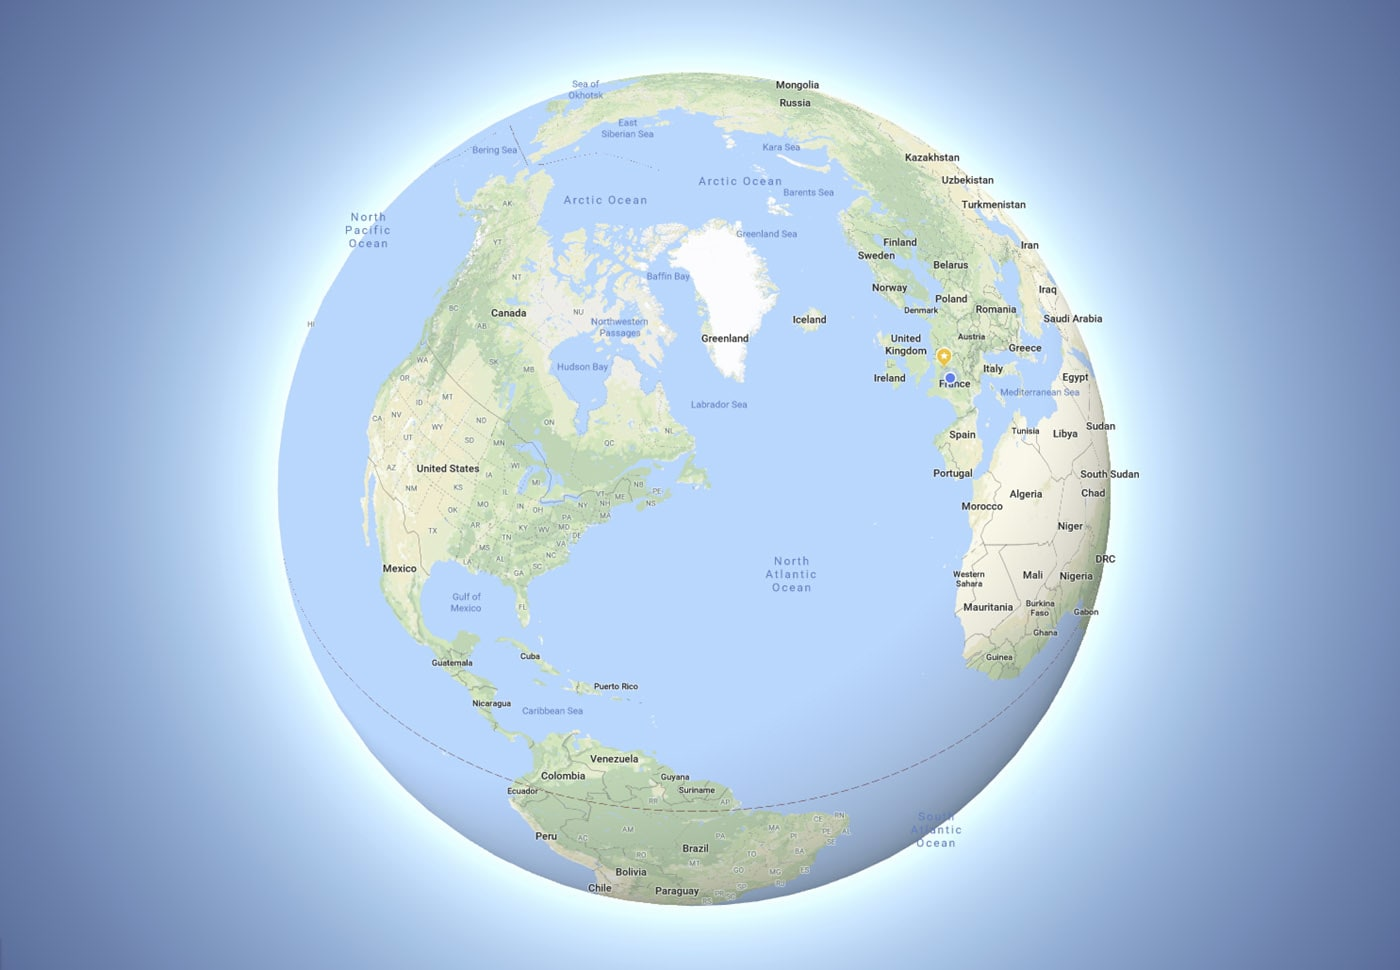 Google Maps now zooms out to a globe instead of a flat Earth ... on google docs, satellite map images with missing or unclear data, yahoo! maps, bing maps, gogole maps, google chrome, google mars, search maps, goolge maps, gppgle maps, web mapping, topographic maps, google sky, google map maker, google search, online maps, aerial maps, microsoft maps, msn maps, waze maps, googie maps, amazon fire phone maps, google goggles, android maps, google voice, route planning software, ipad maps, stanford university maps, aeronautical maps, googlr maps, google translate, google moon, road map usa states maps, iphone maps,